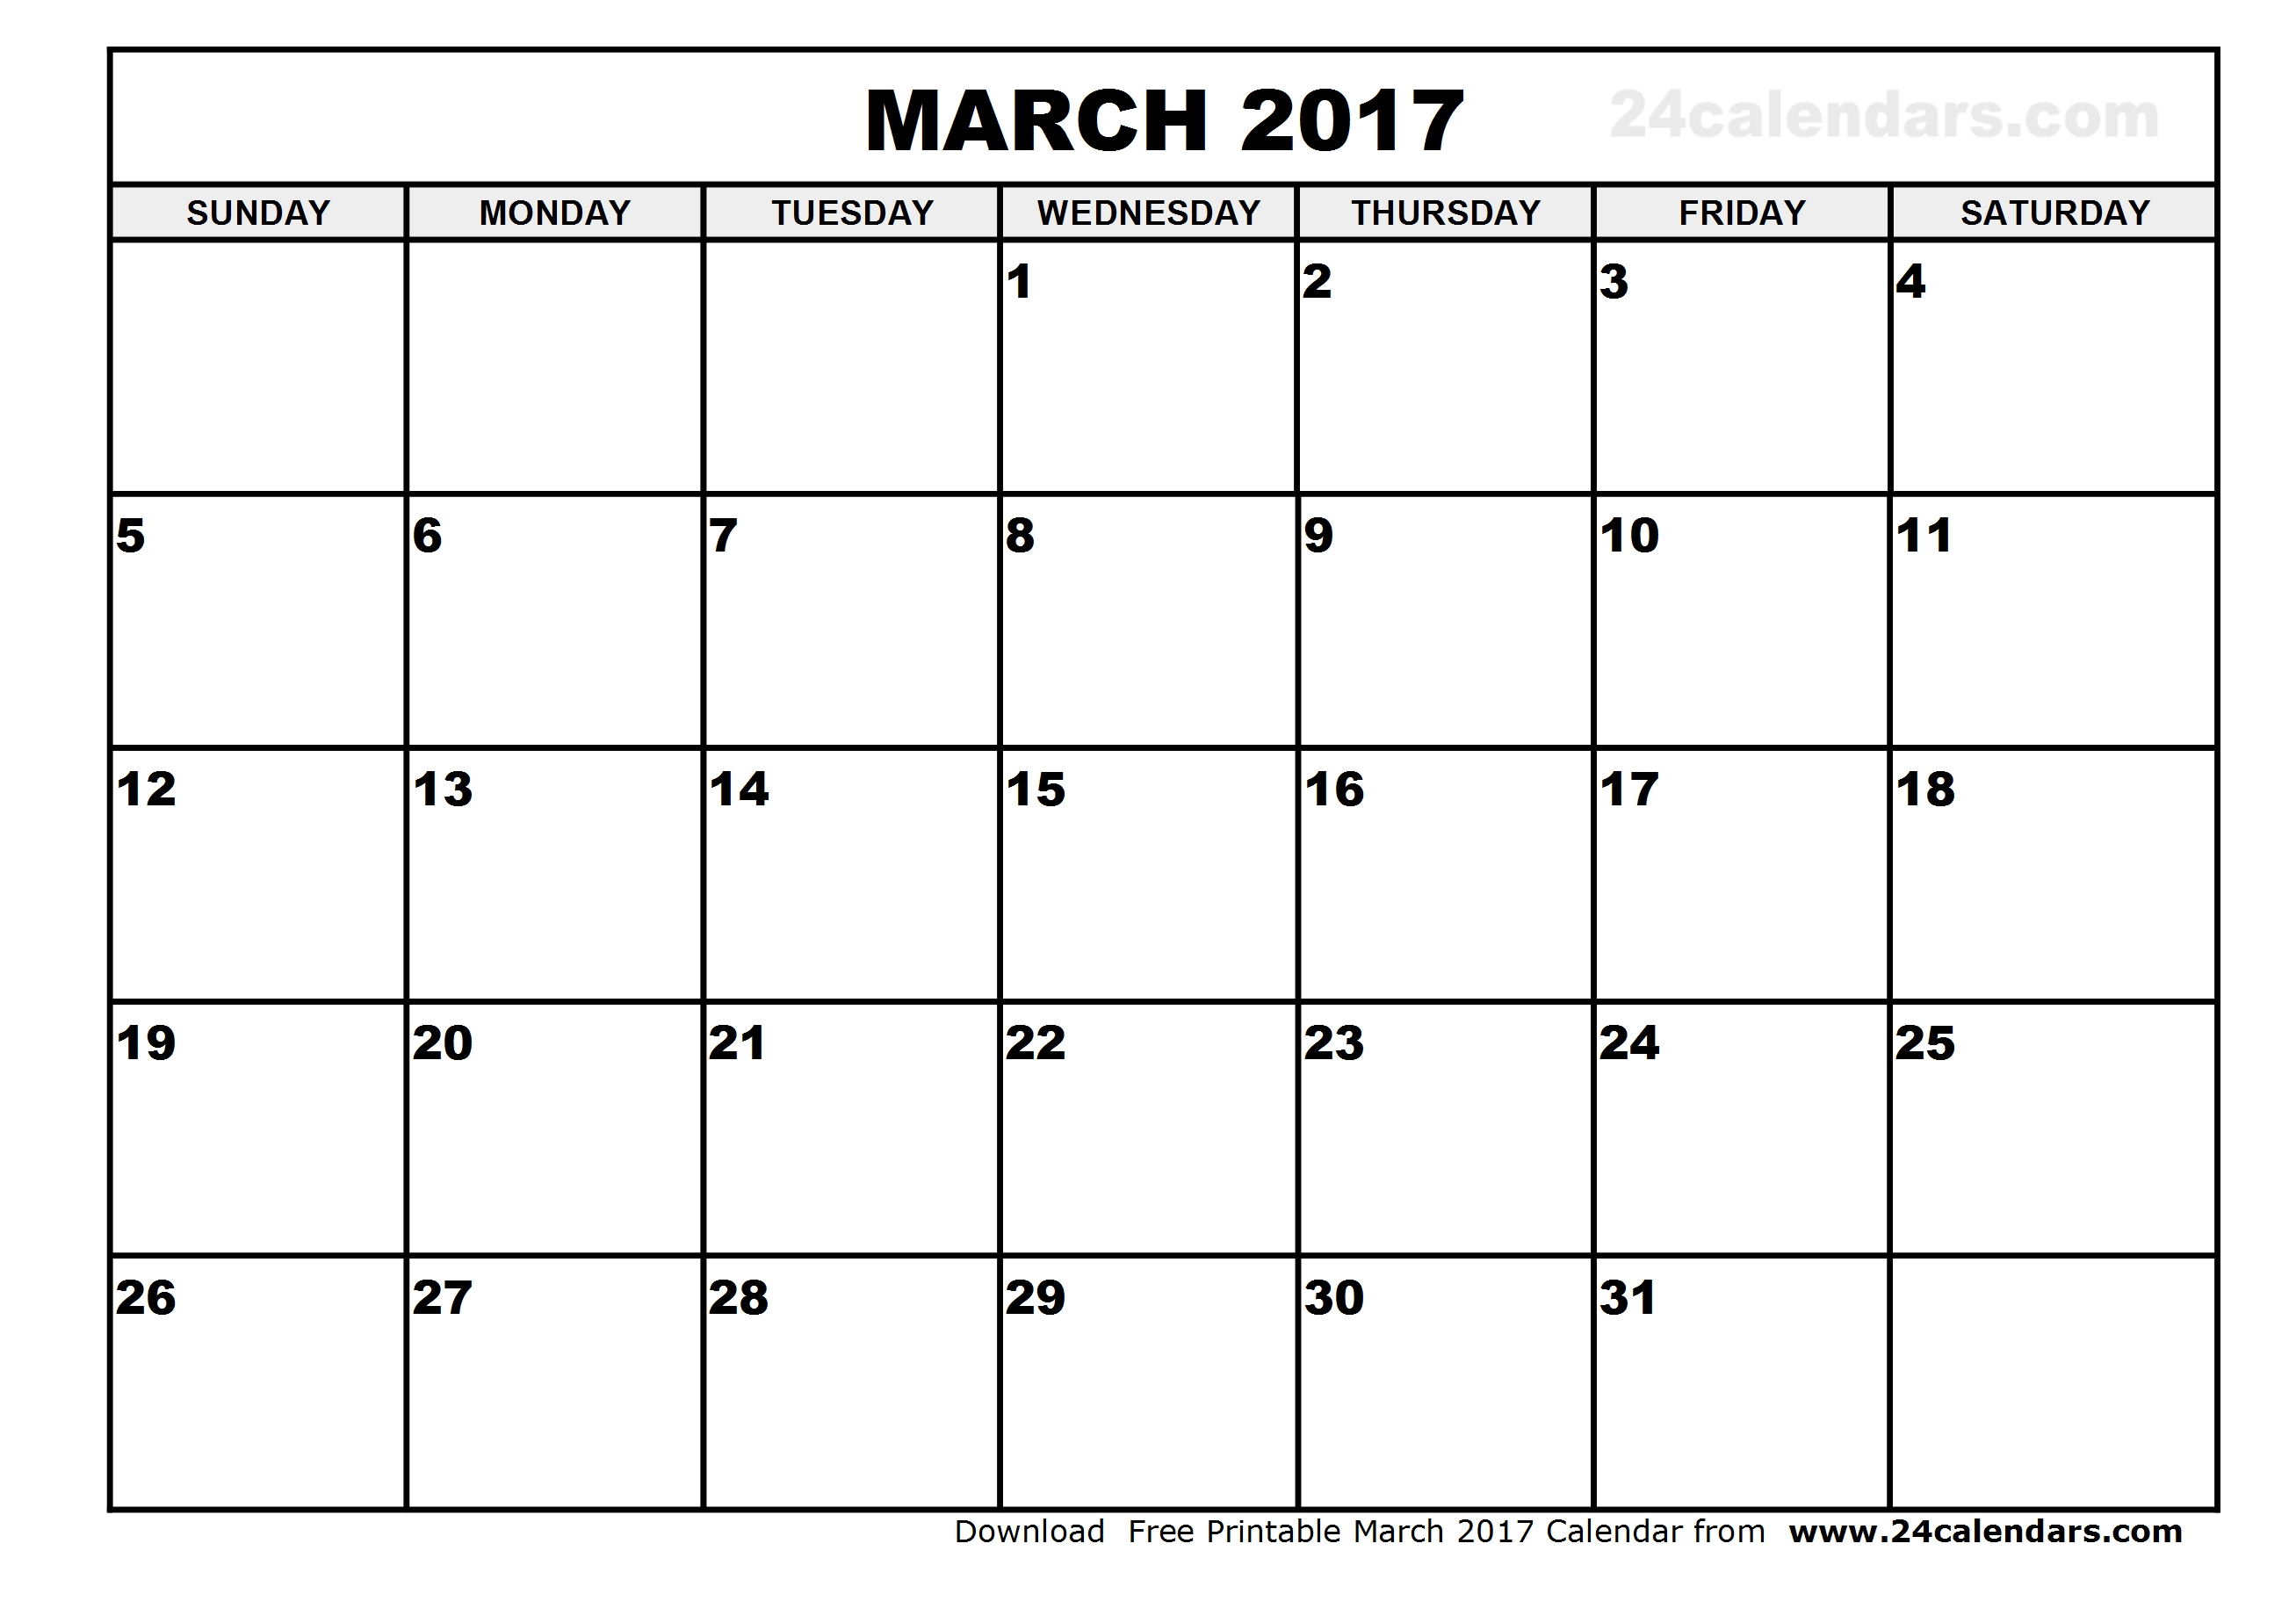 Free March 2017 Calendar (With US Holidays) – Printable Calendar